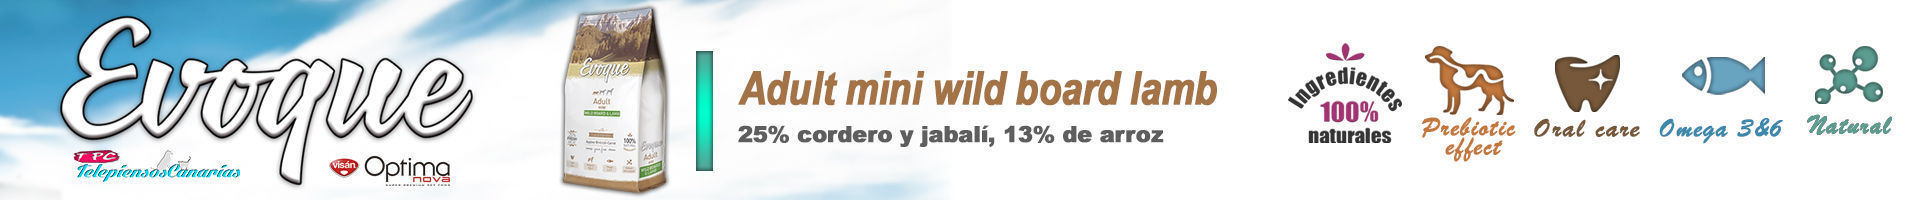 Evoque adult mini wild boar and lamb, con 25 % de carne fresca